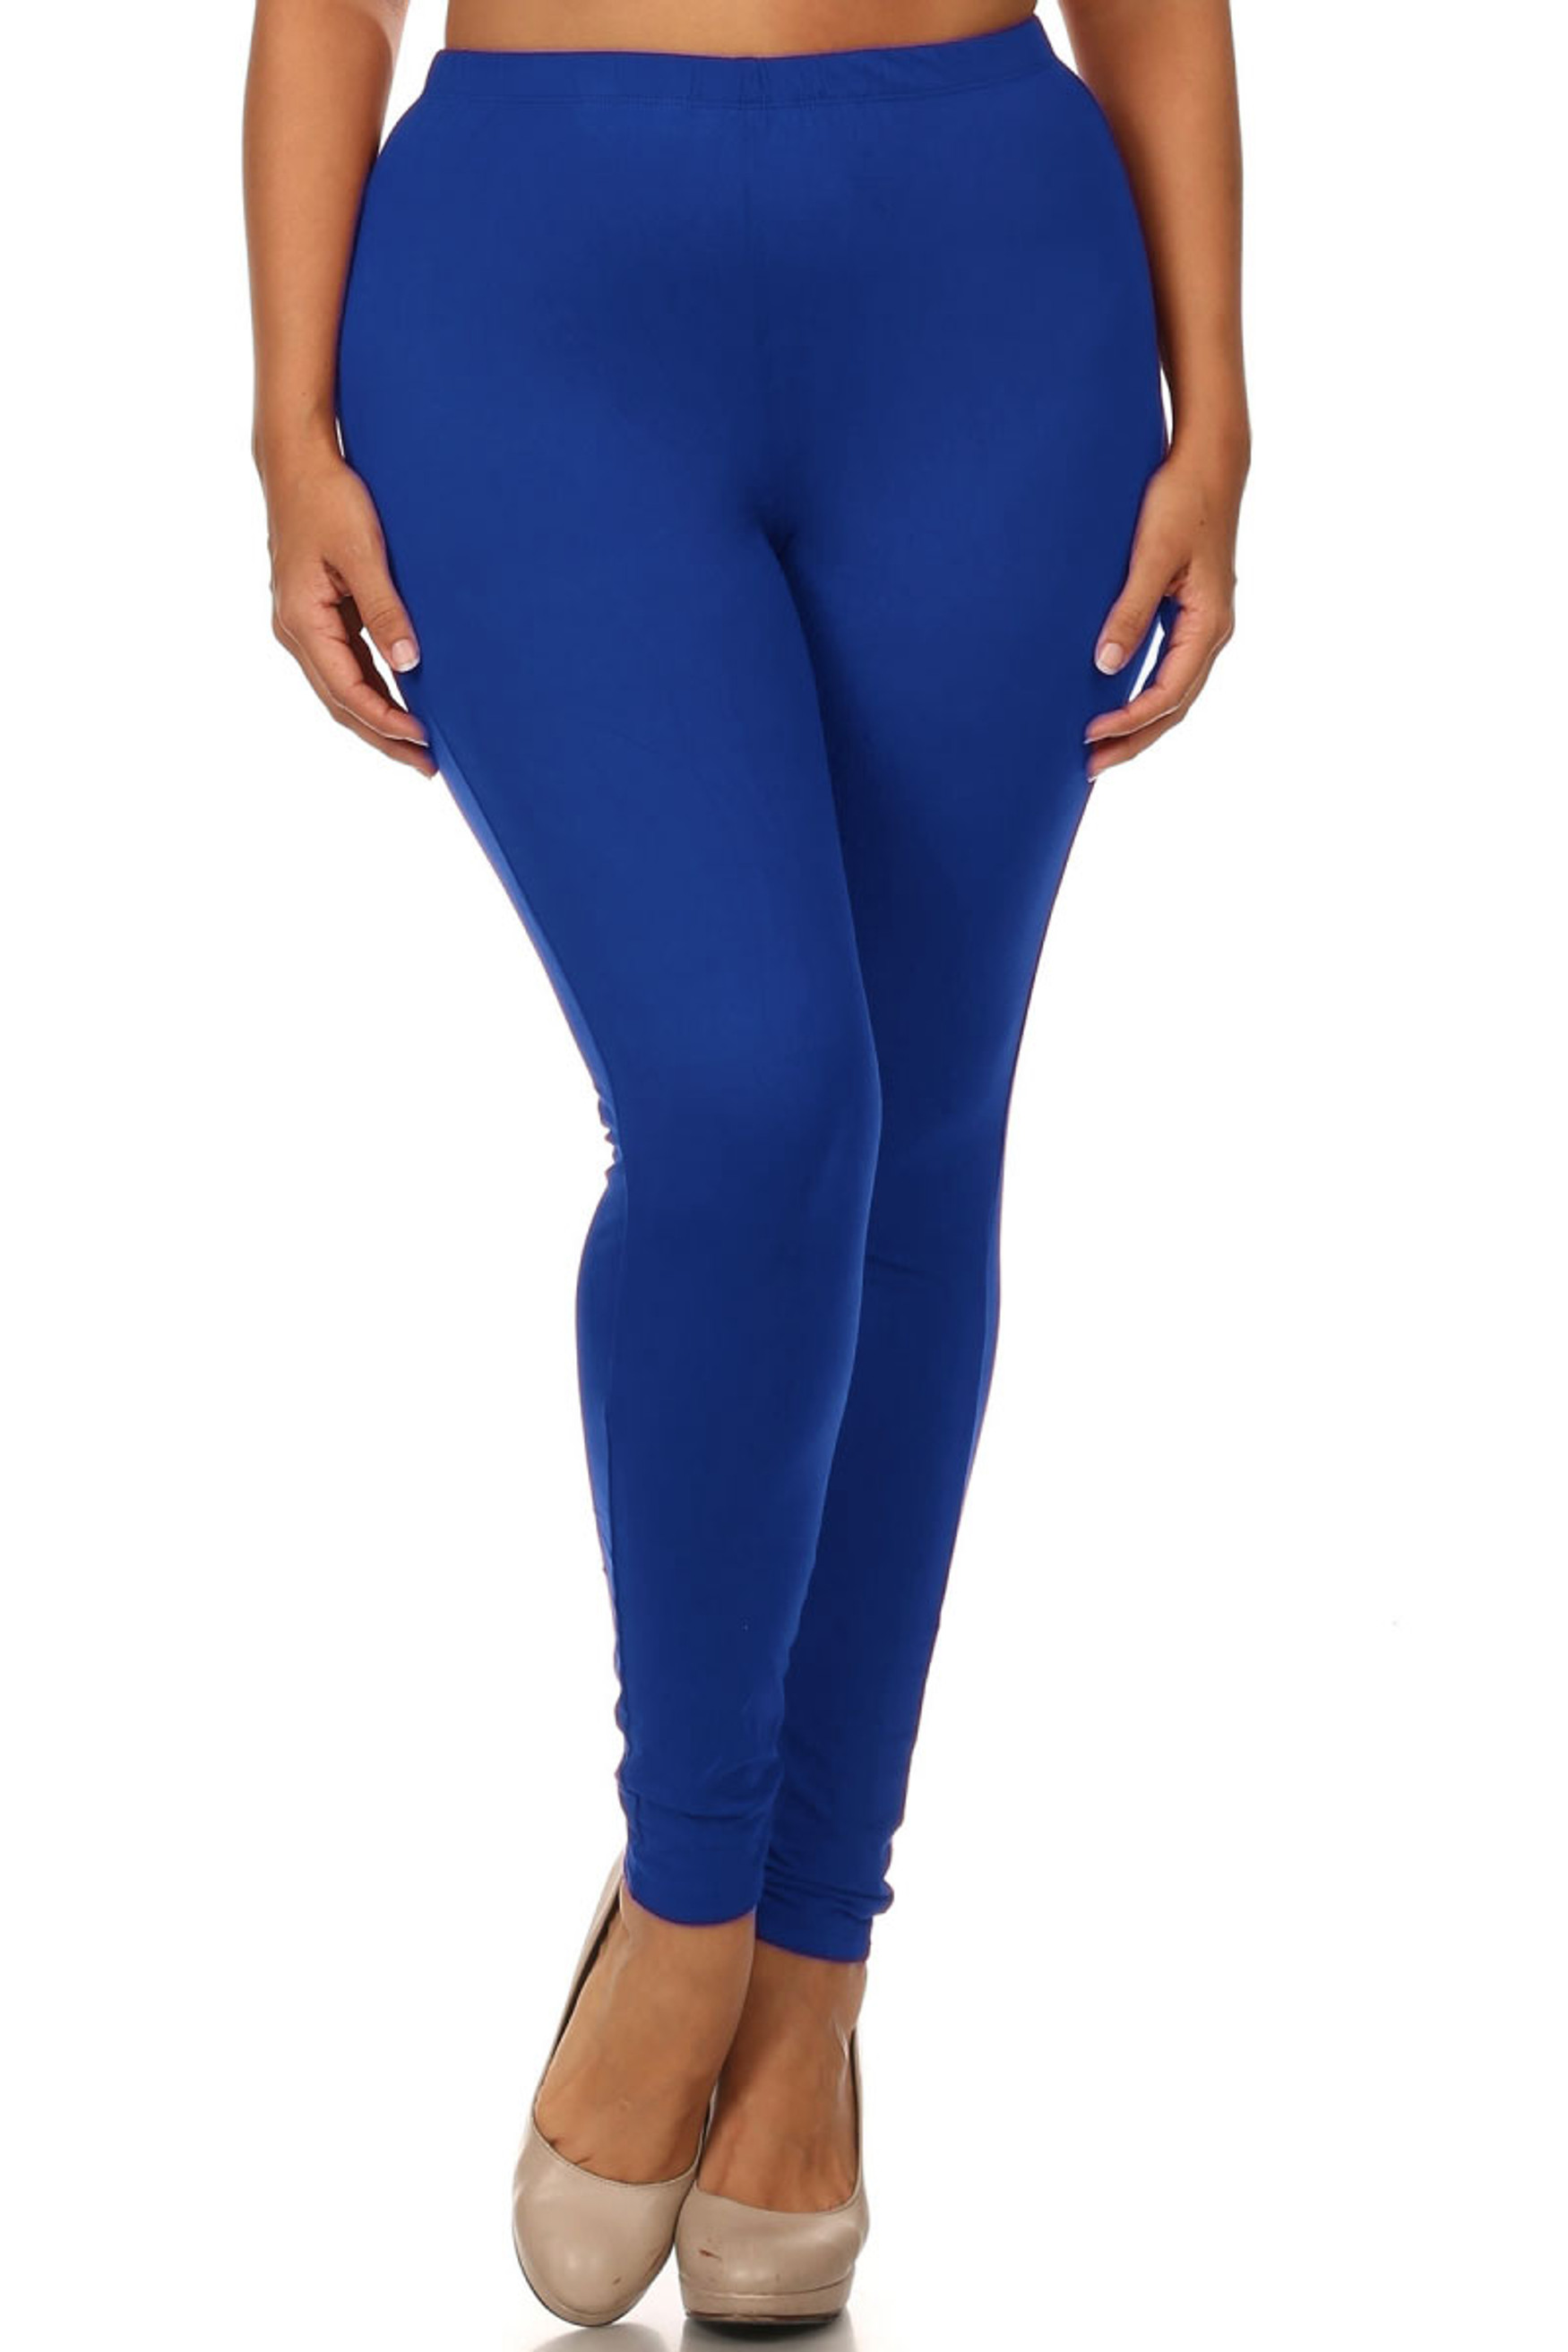 Front view of made in the USA blue full length plus size cotton leggings with an elastic waist that comes up to about mid rise.